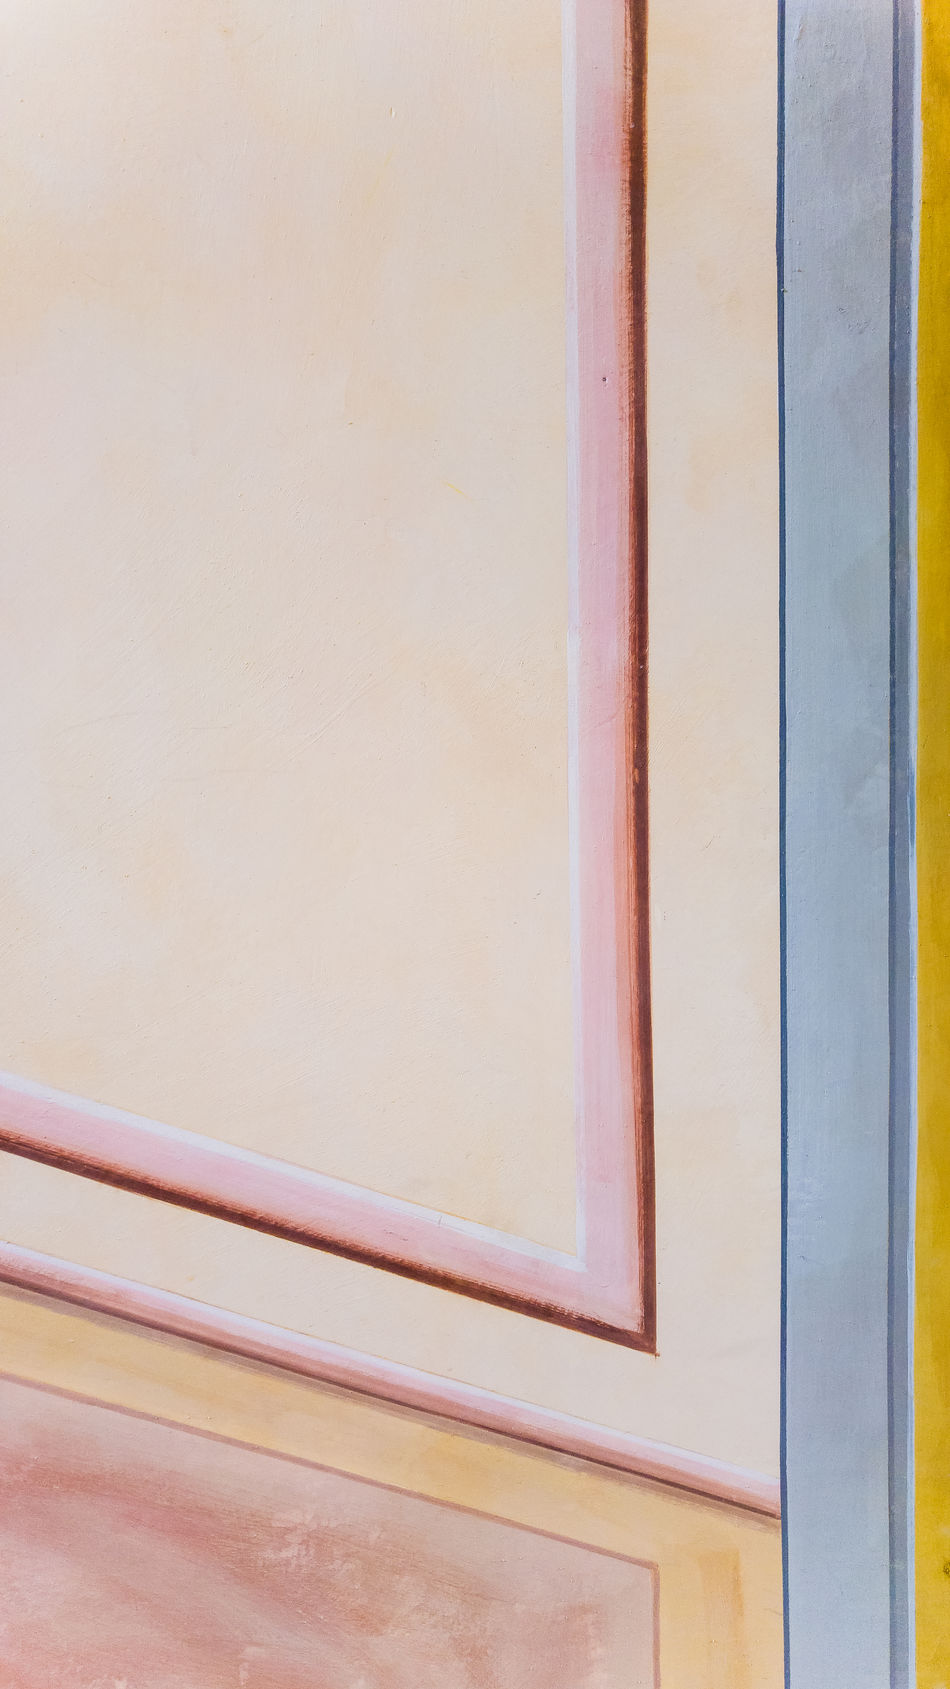 Detail of a fresco on a wall Angle Architecture Close-up Colors Copy Space Day Fresco Full Frame Geometric Shape Indoors  No People Painting Simmetry Wall